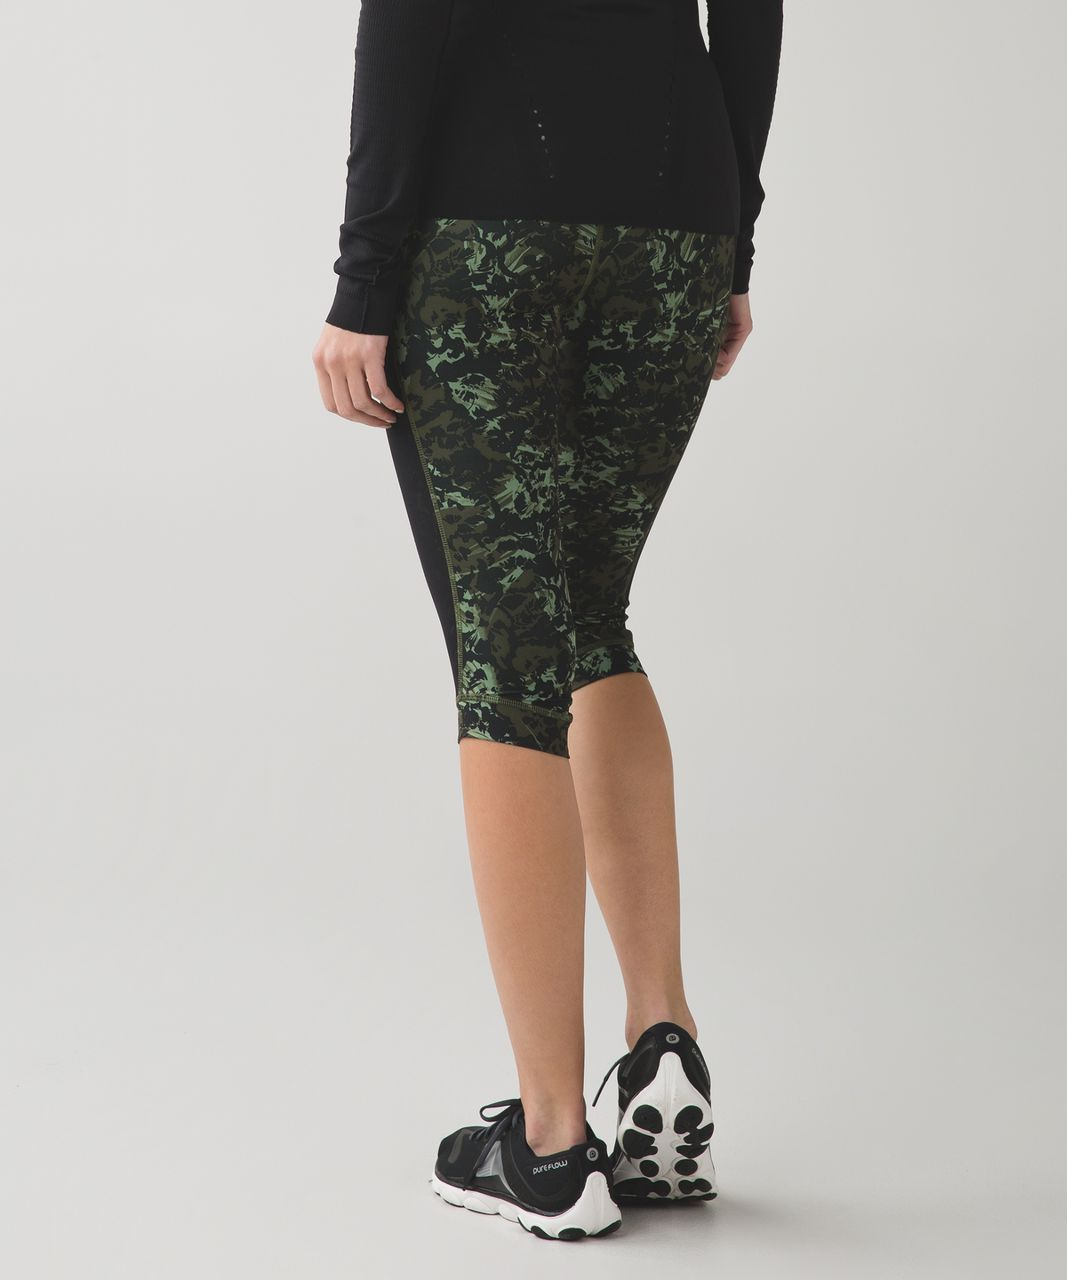 Lululemon Stop At Nothing Crop *Full-On Luxtreme - Fleur Sombre Desert Olive Fatigue Green / Black